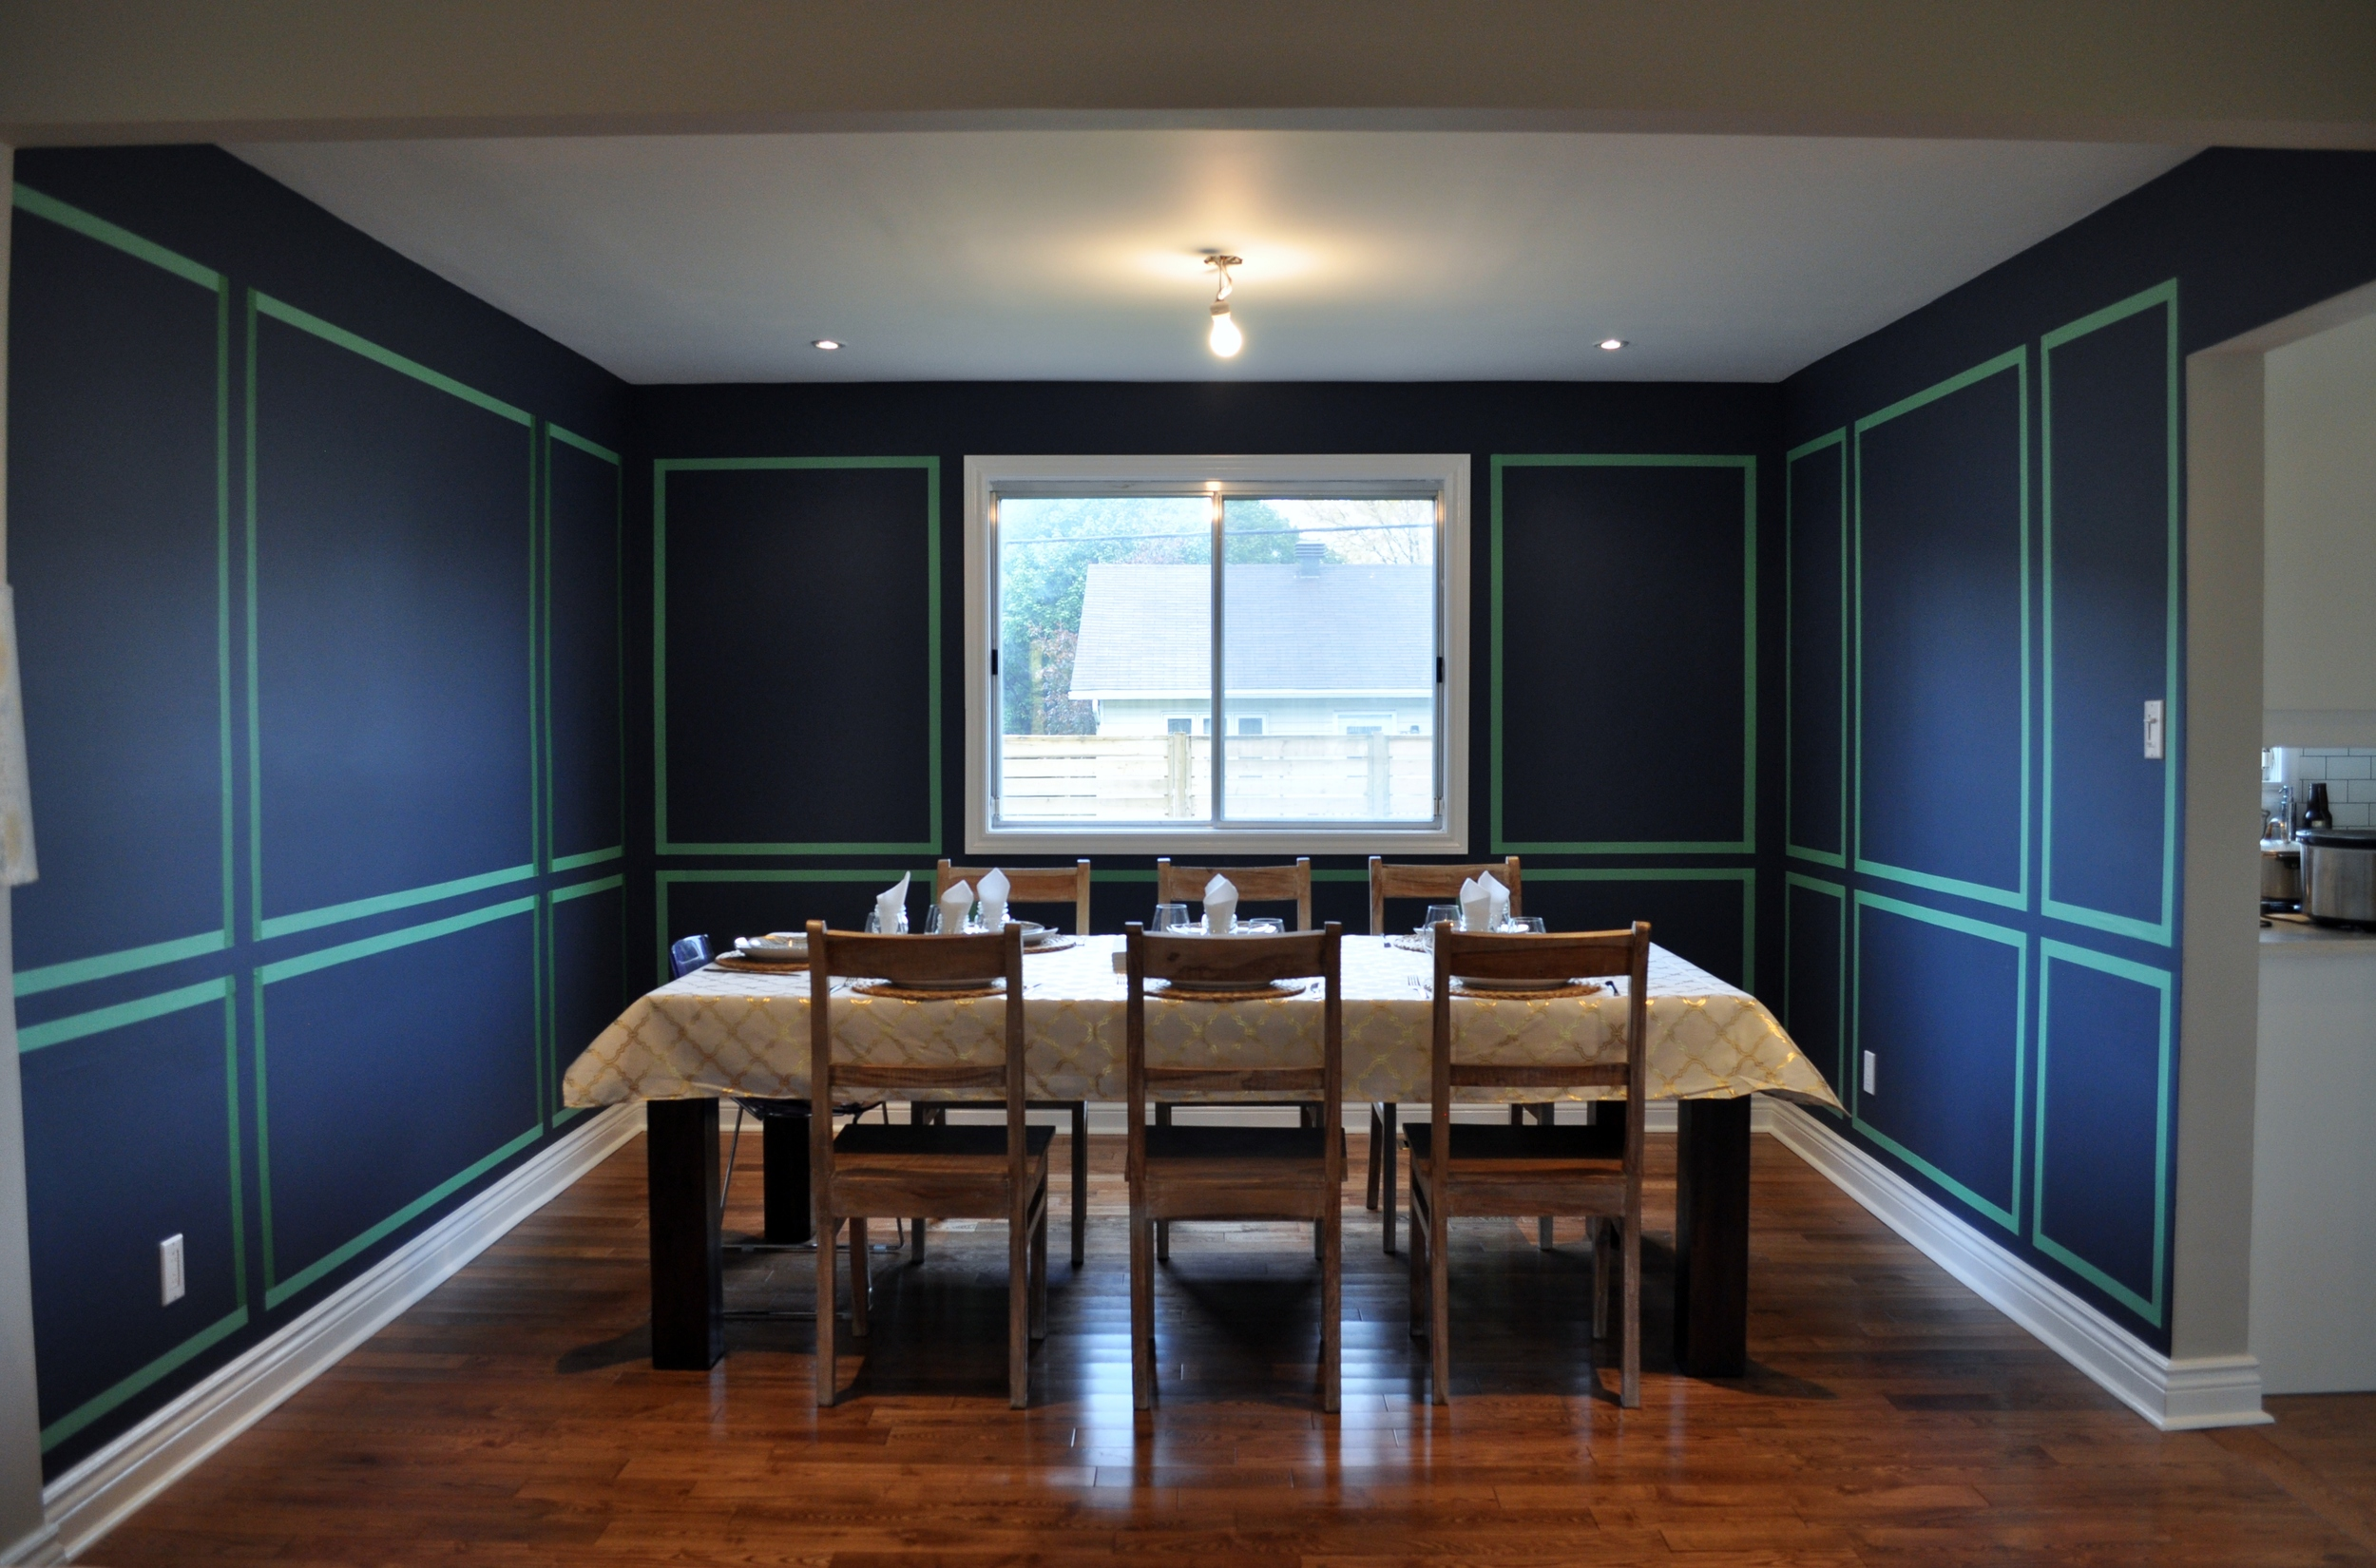 Dining Room Paneling Mock-up 1